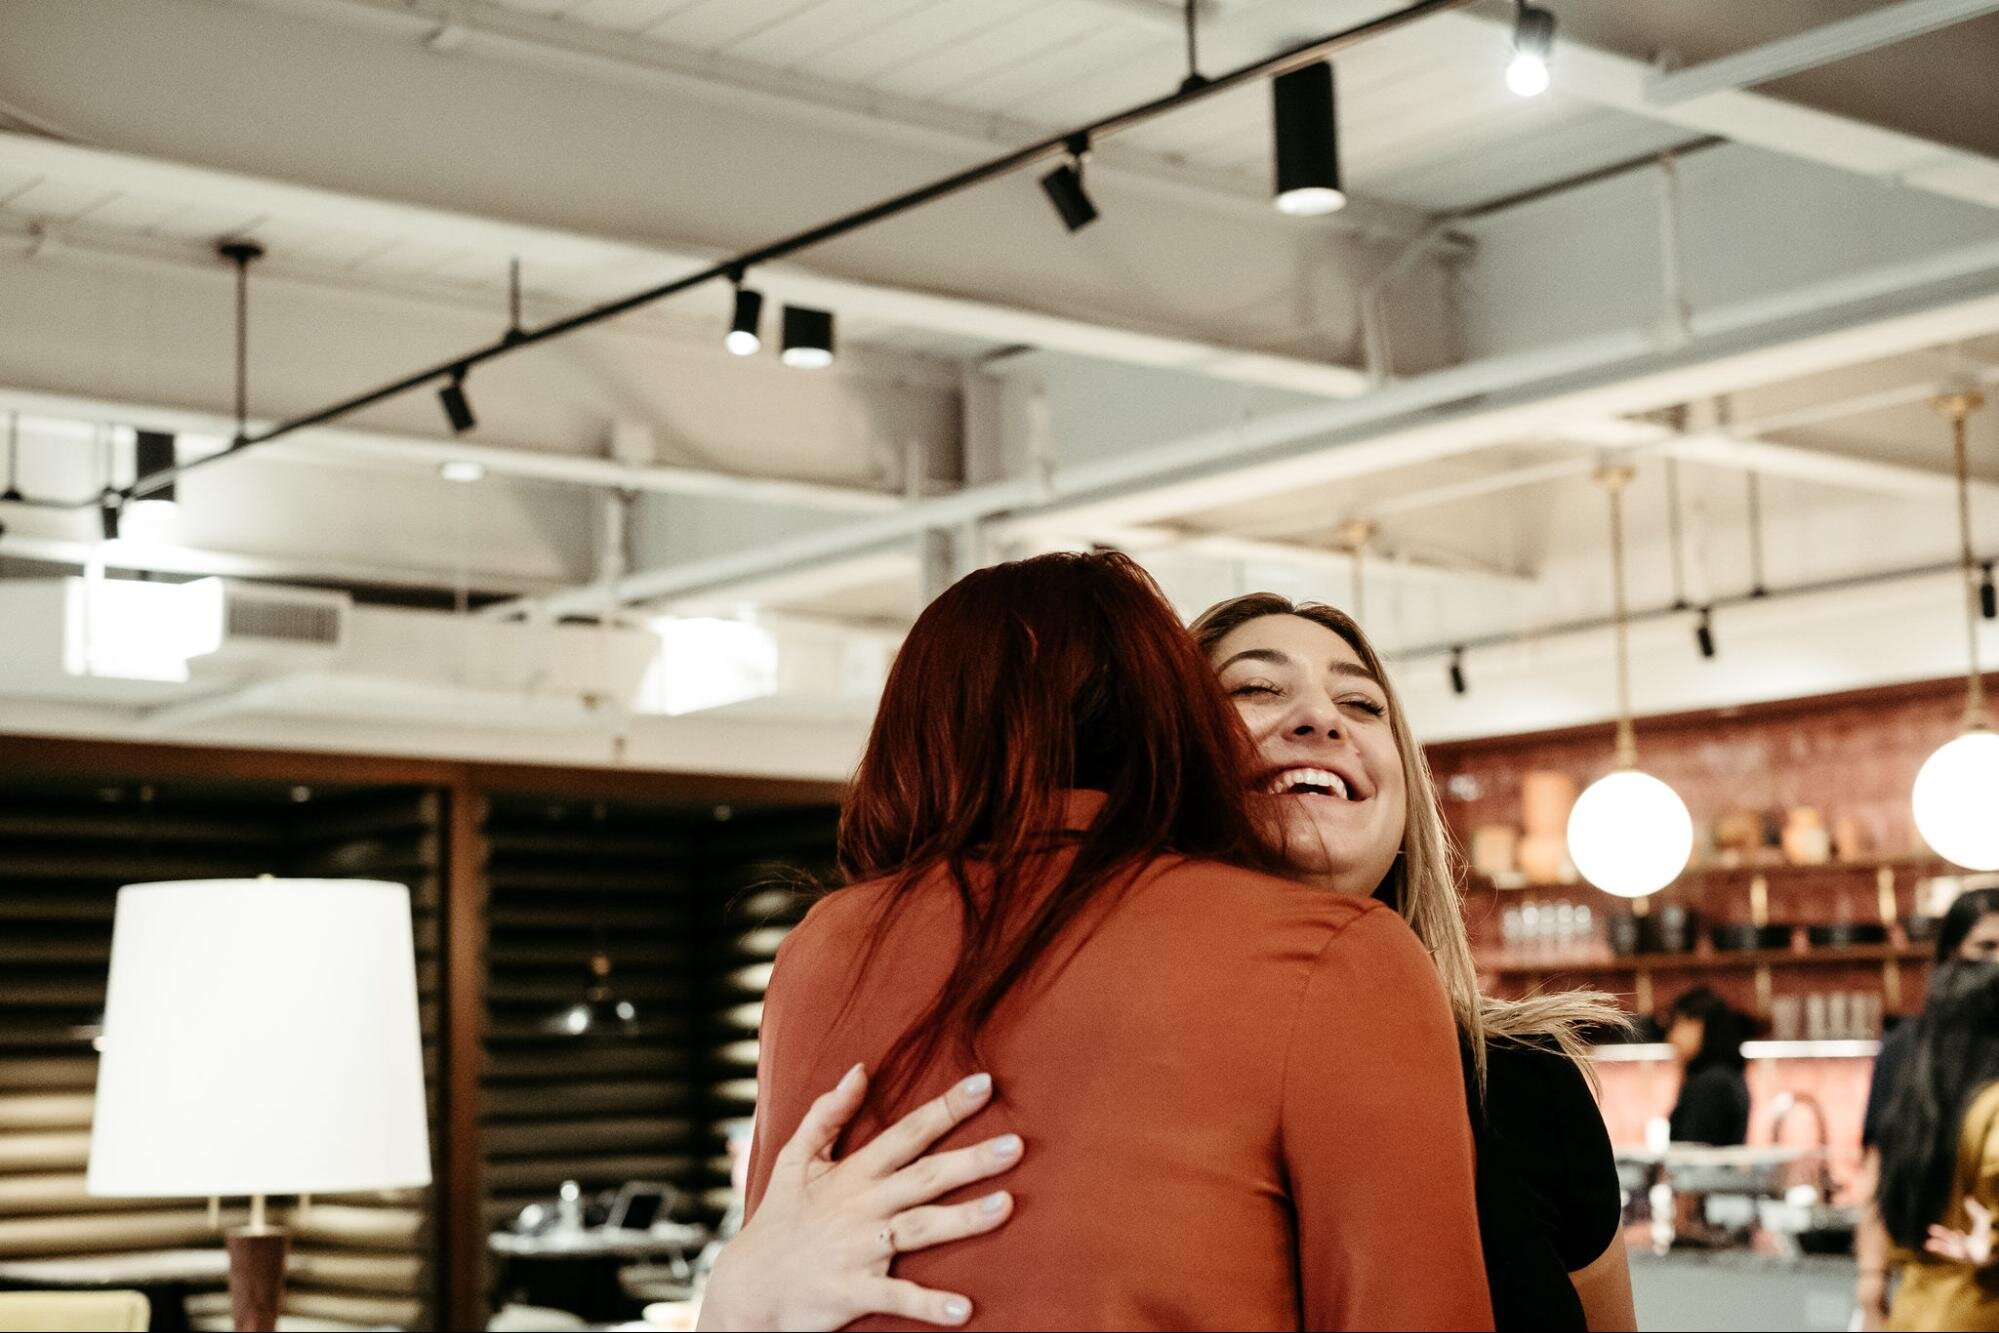 two employees hugging that resolved conflict in the workplace